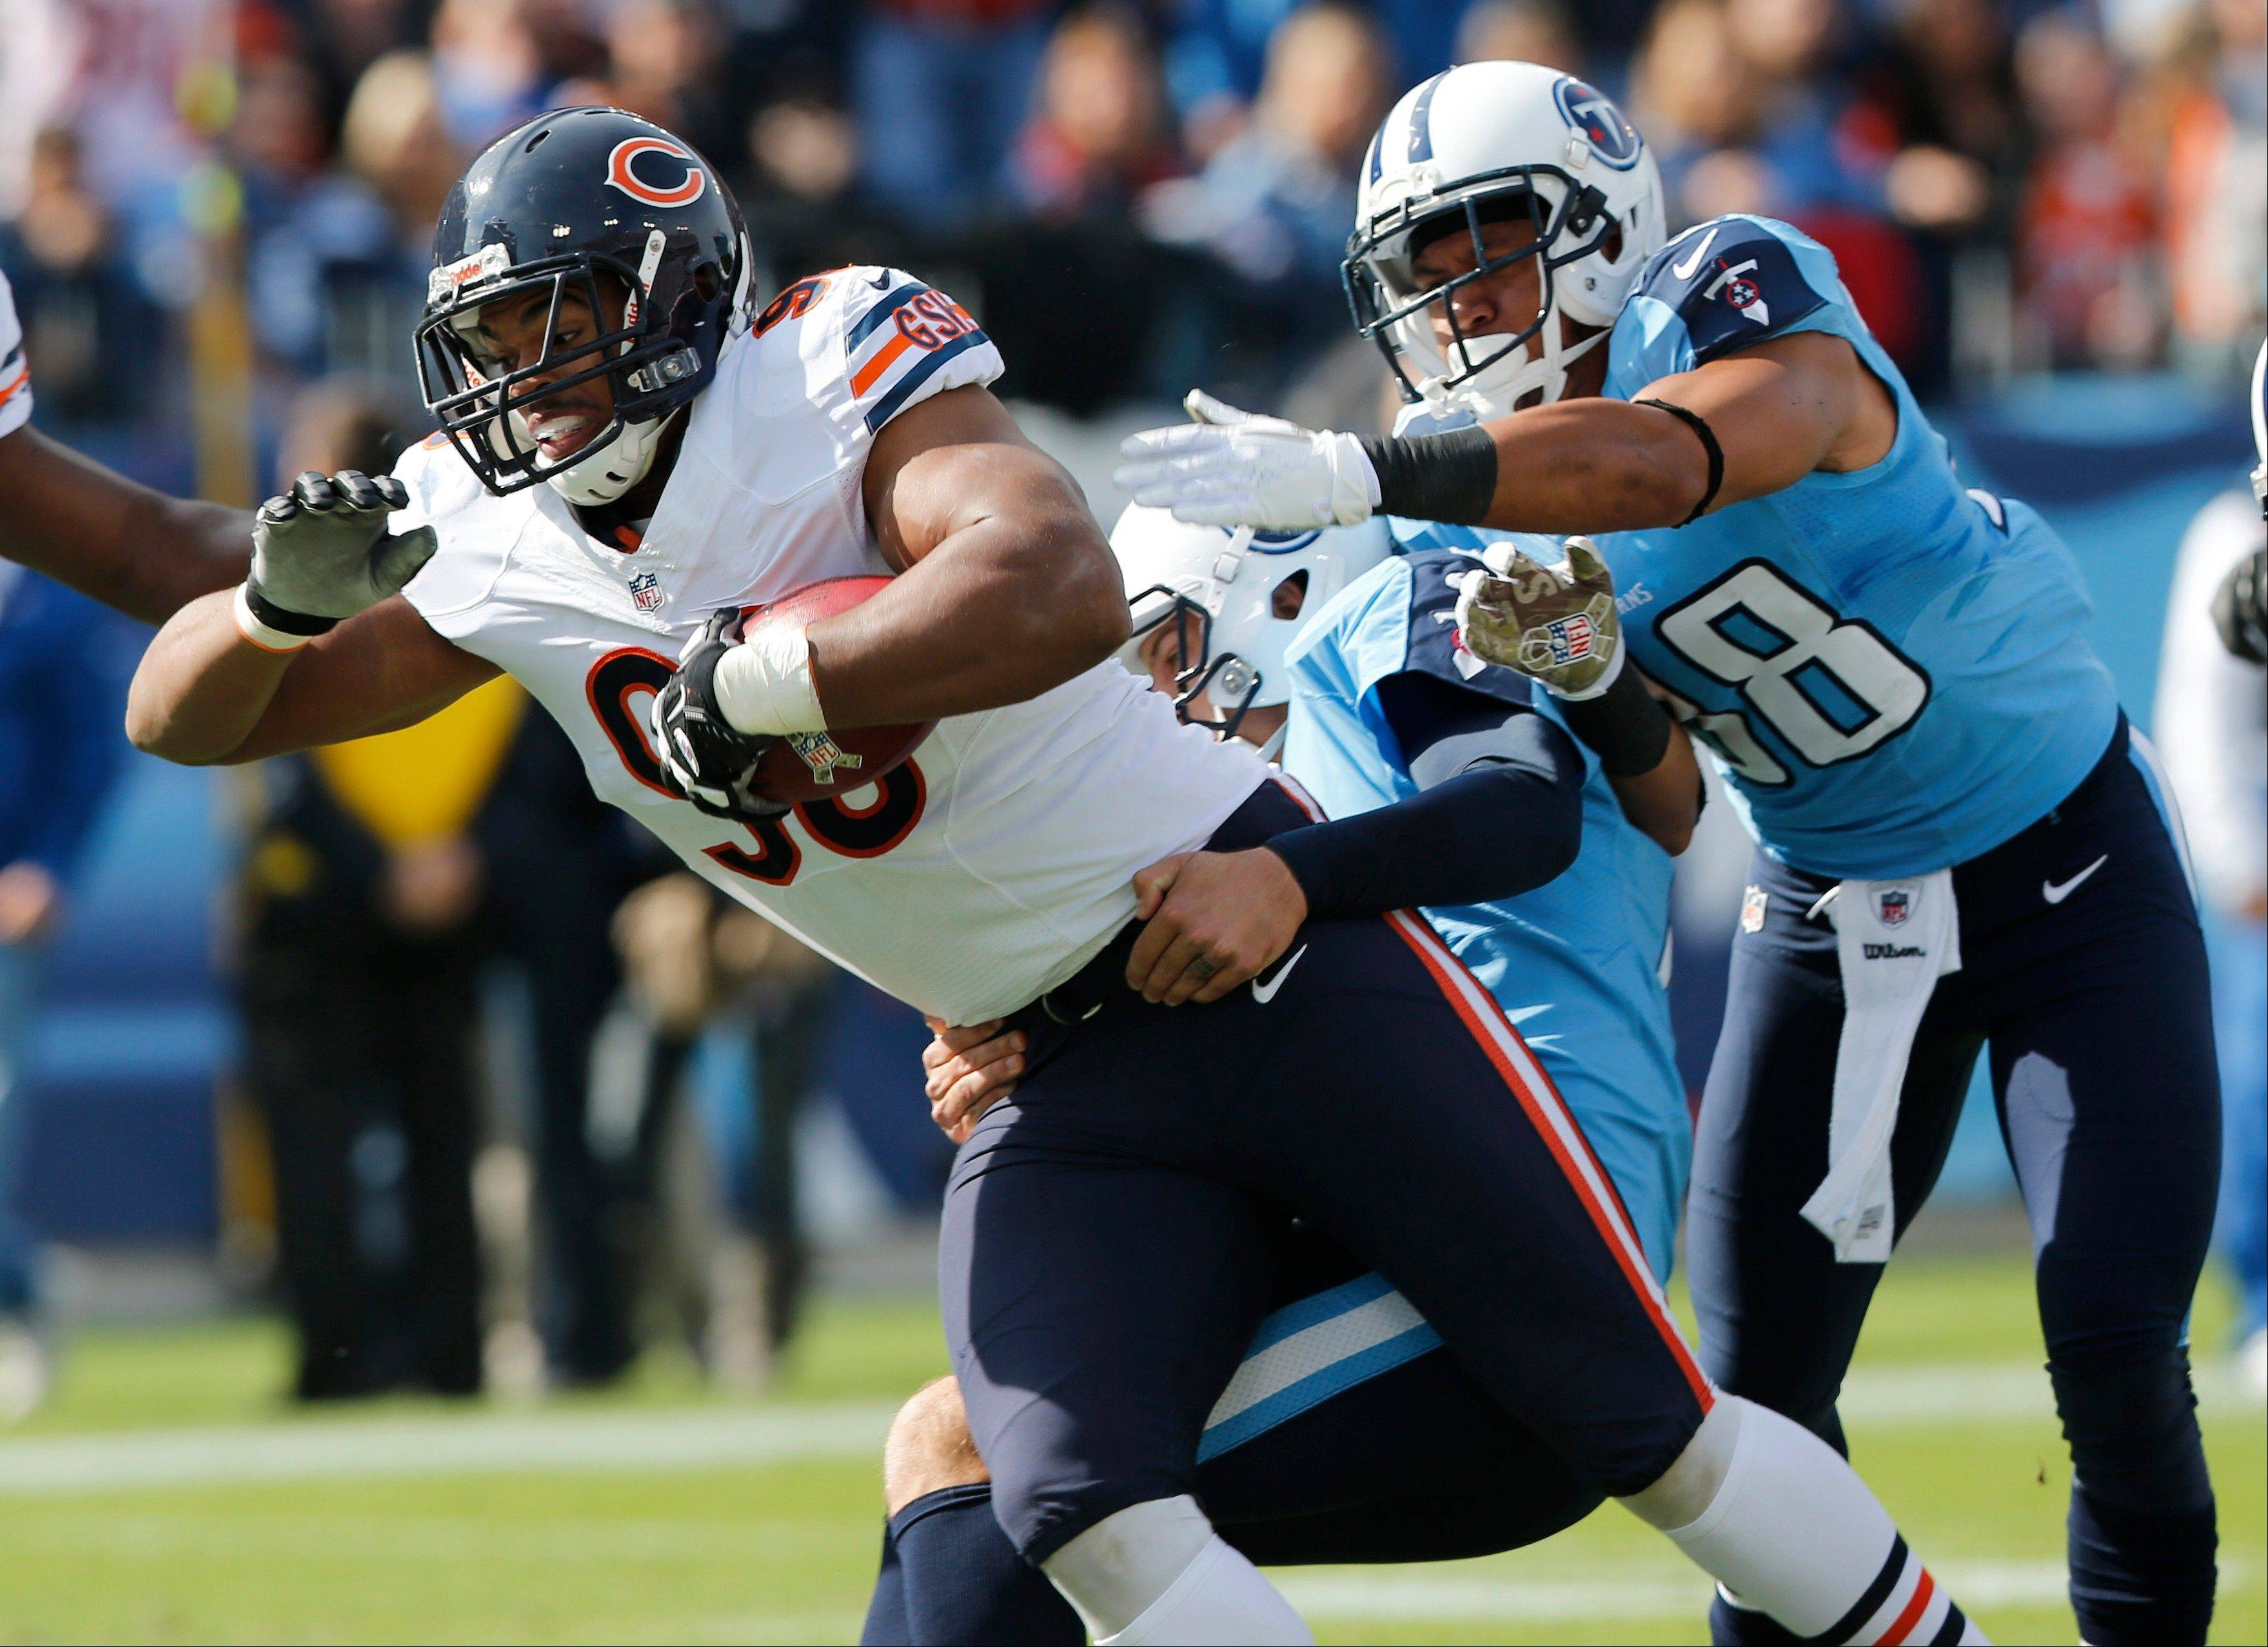 Chicago Bears defensive end Corey Wootton (98) scores a touchdown after he recovered a blocked punt as Tennessee Titans punter Brett Kern, center, and safety Al Afalava (38) try to bring him down in the first quarter of an NFL football game Sunday, Nov. 4, 2012, in Nashville, Tenn.